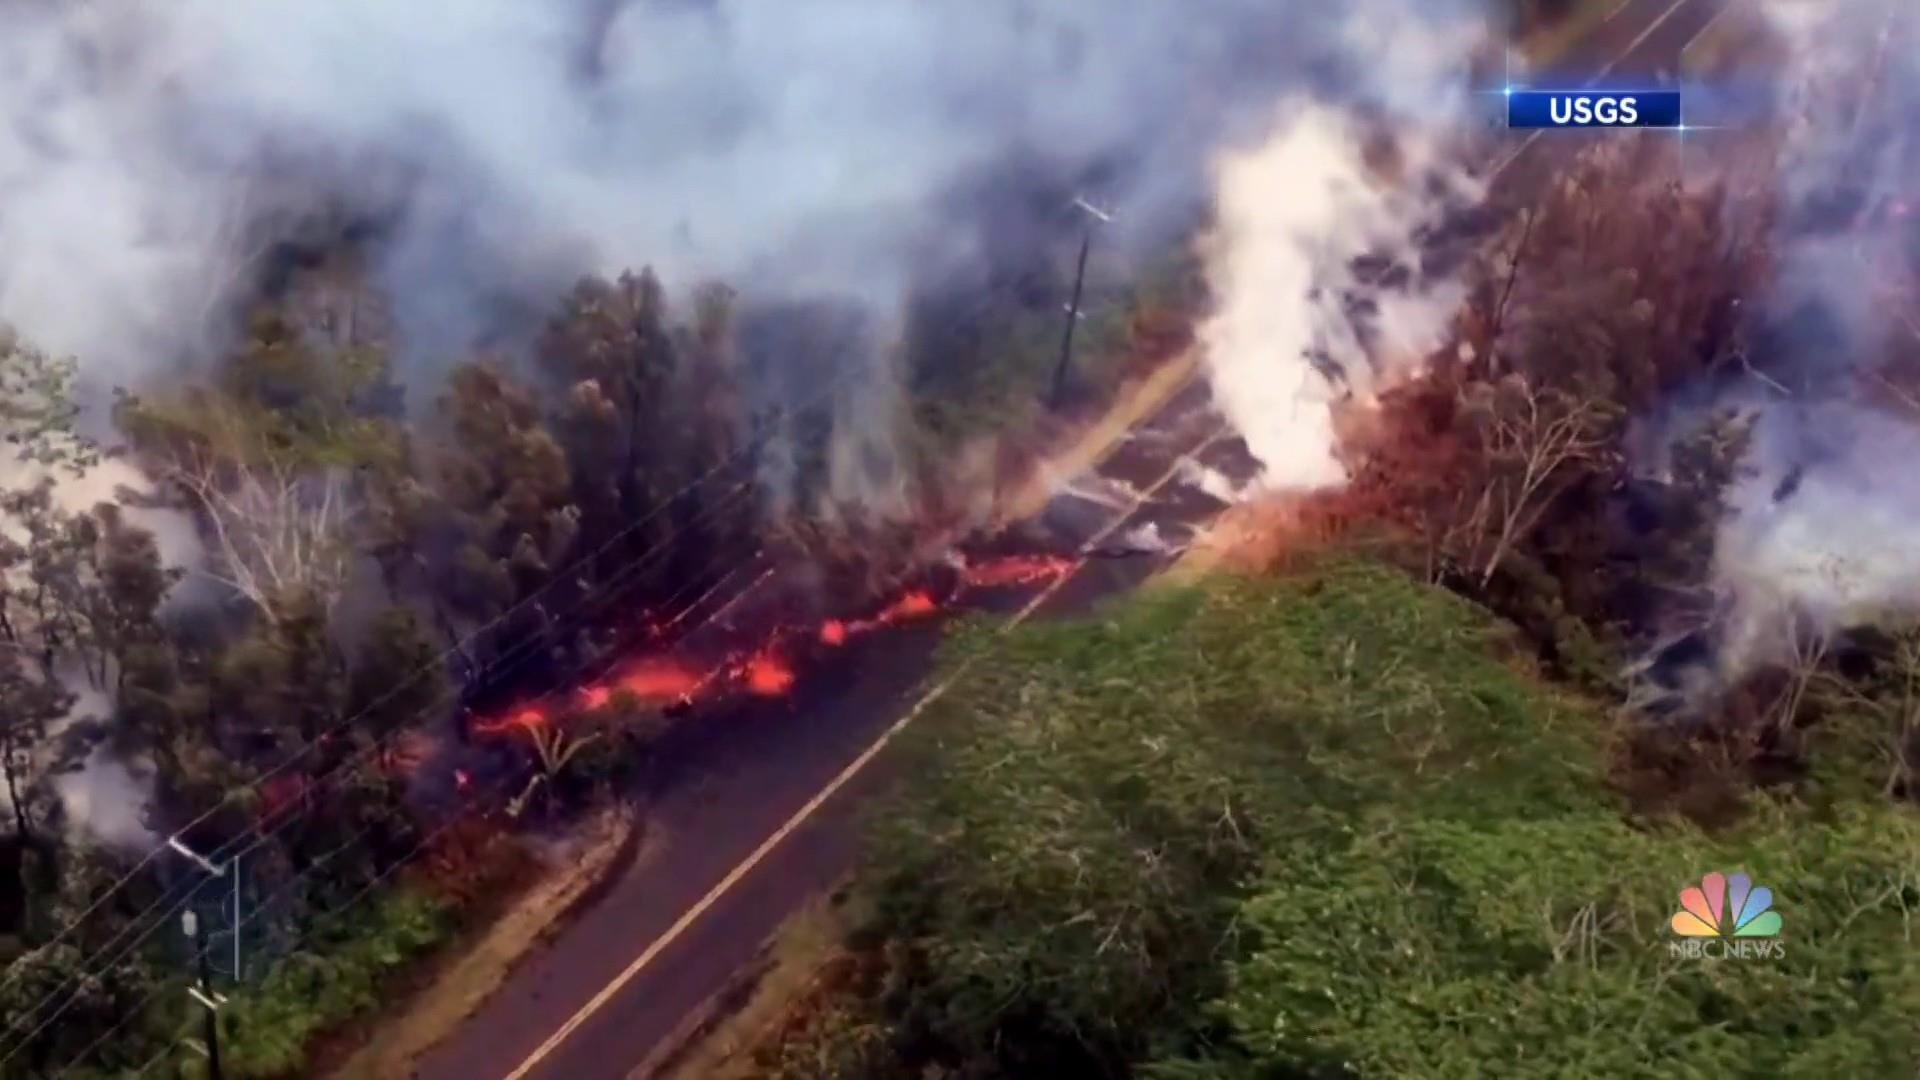 Hawaii's Kilauea volcano could spew boulders the size of